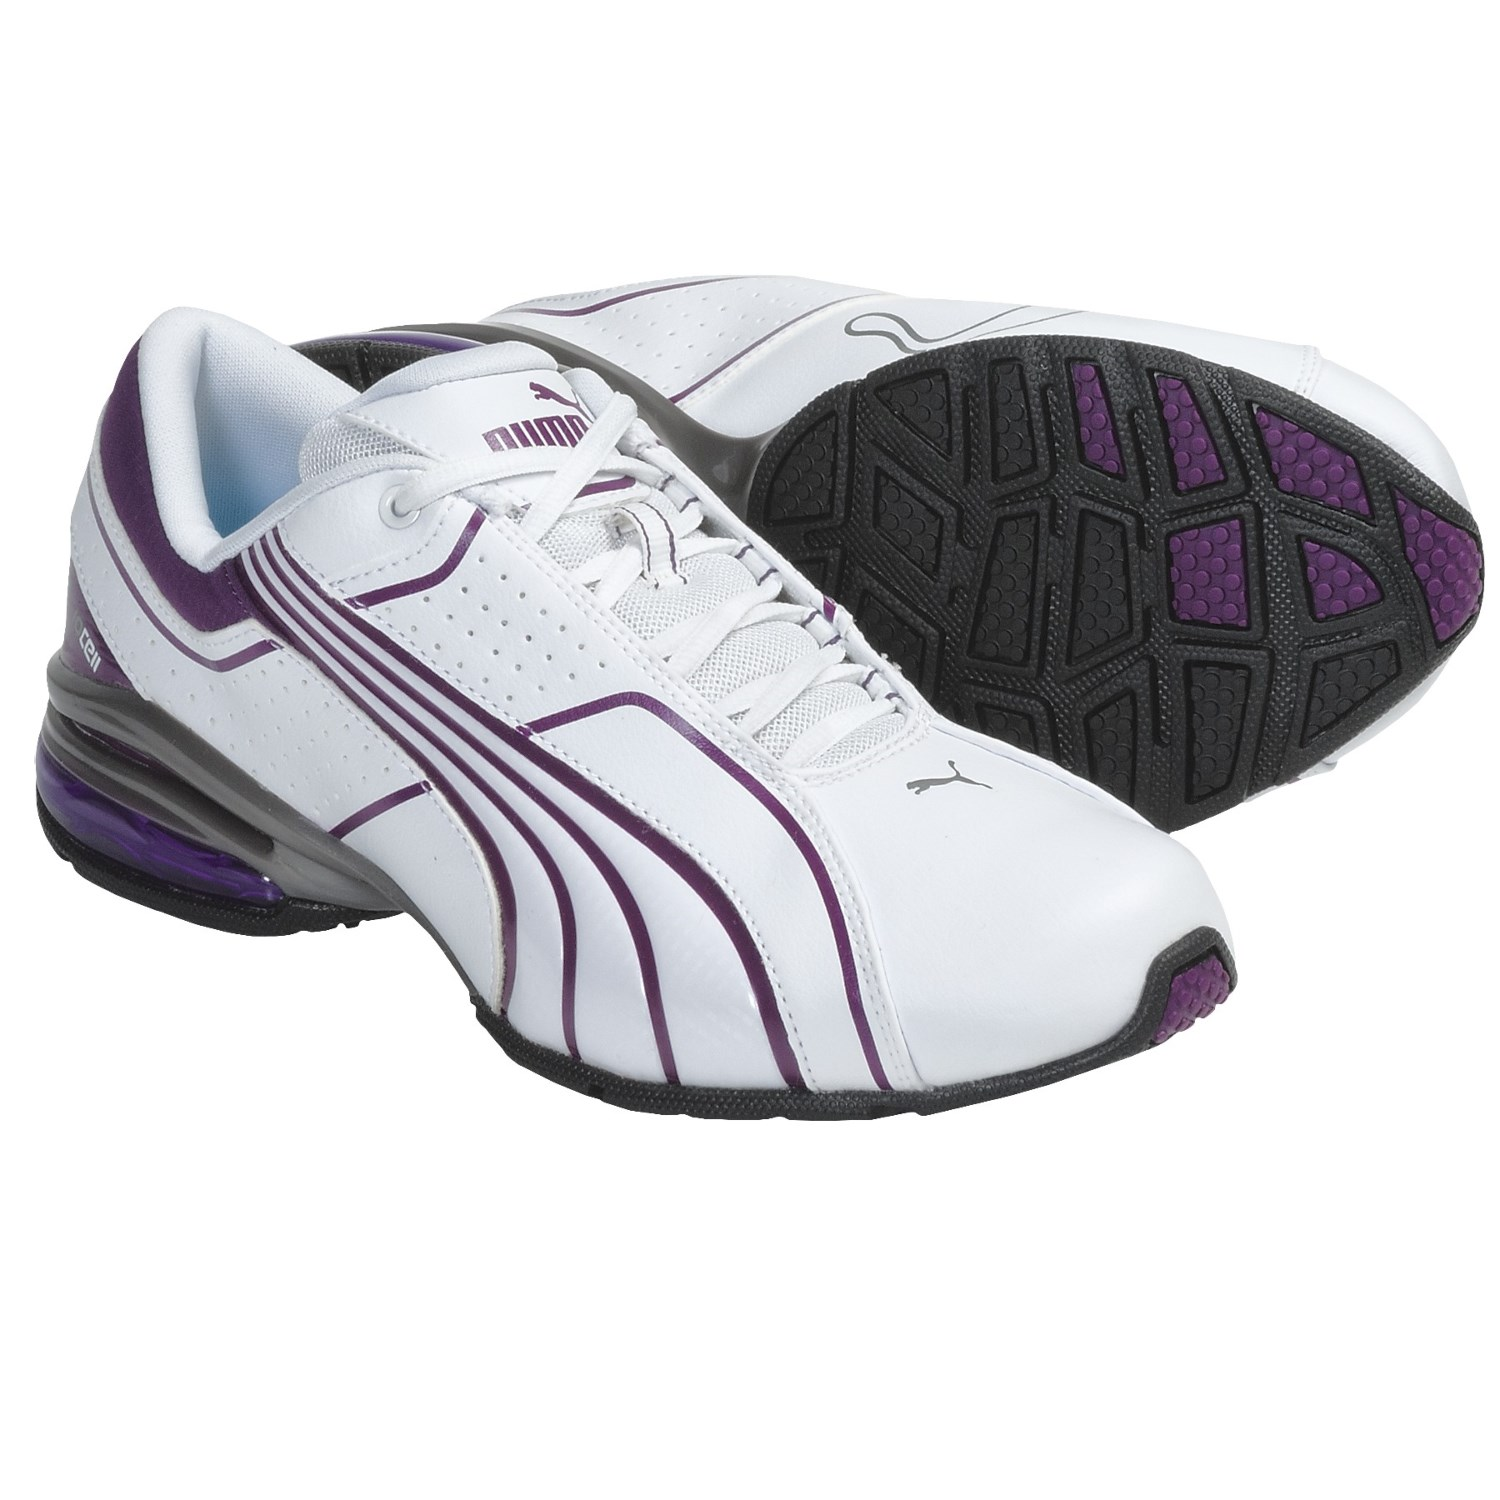 Puma Cell Tolero 3 Running Sneakers (For Women) in White/Gloxinia